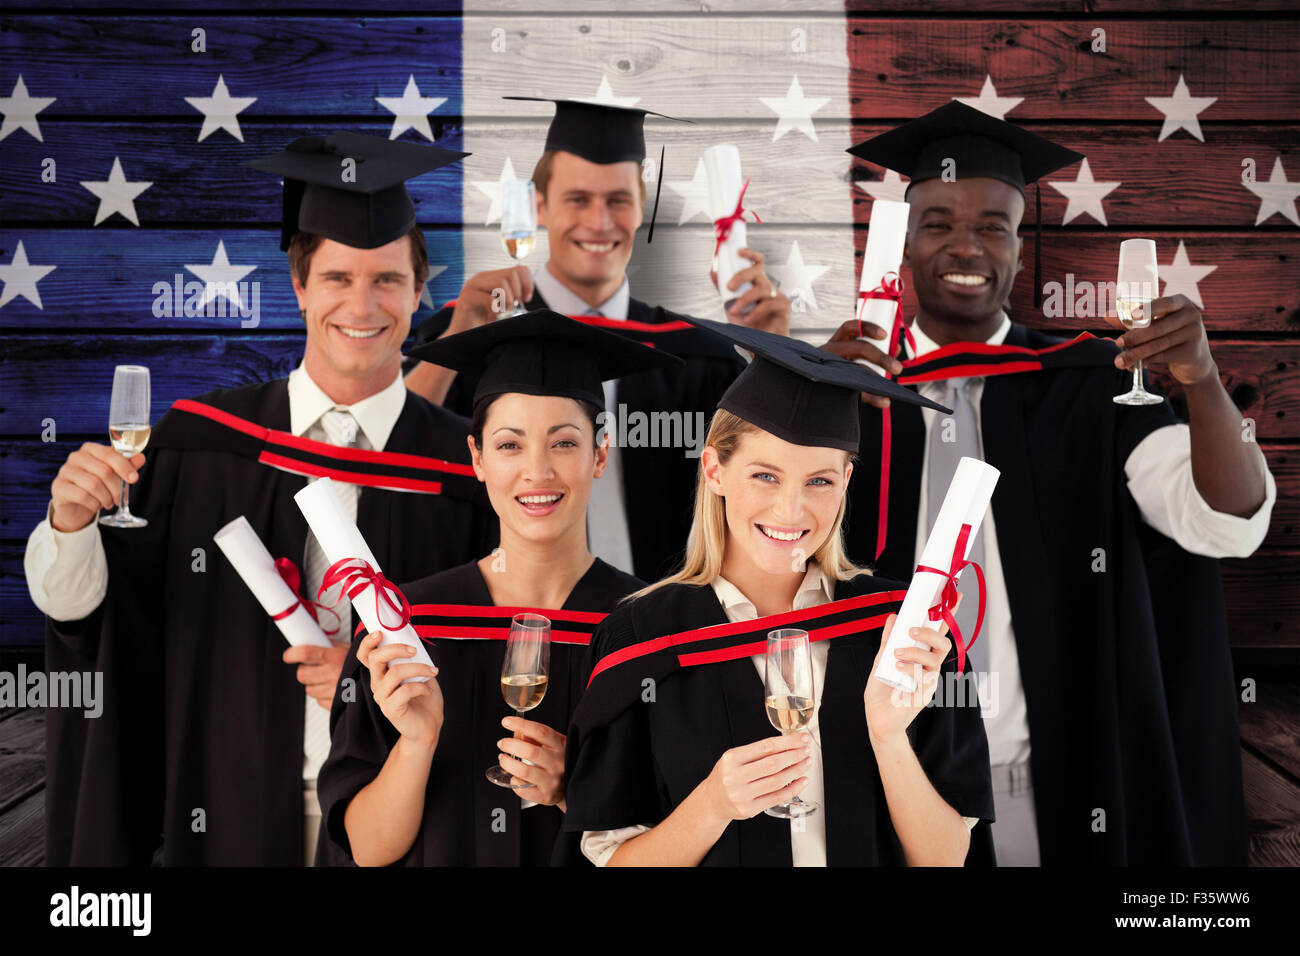 Composite image of group of people graduating from college - Stock Image